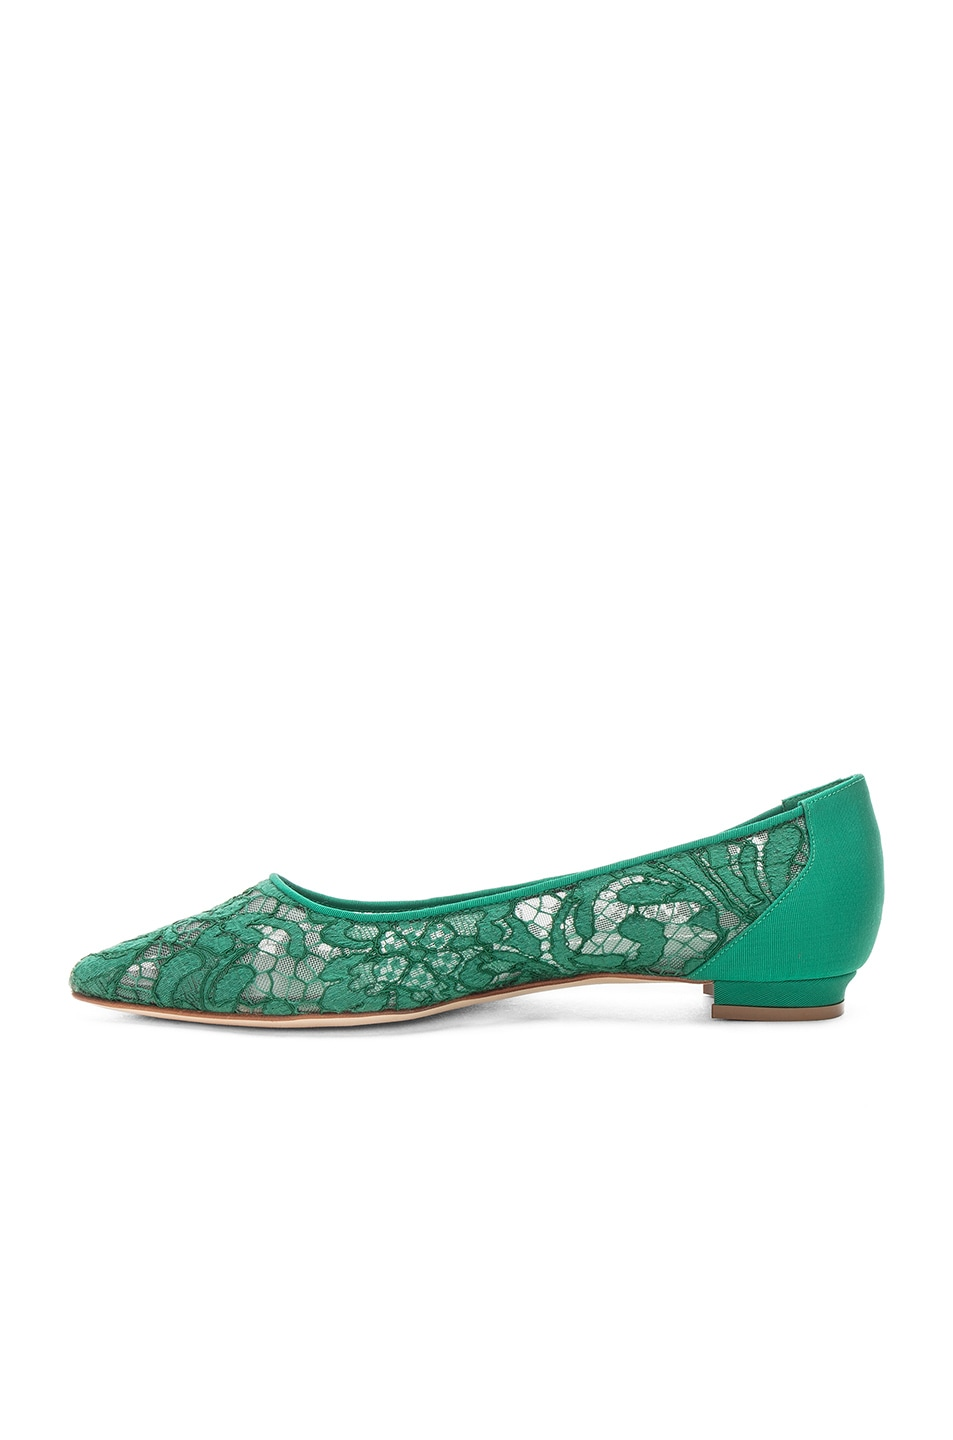 Image 5 of Manolo Blahnik Tittola Lace 10 Pea Flat in Emerald Green Marescot